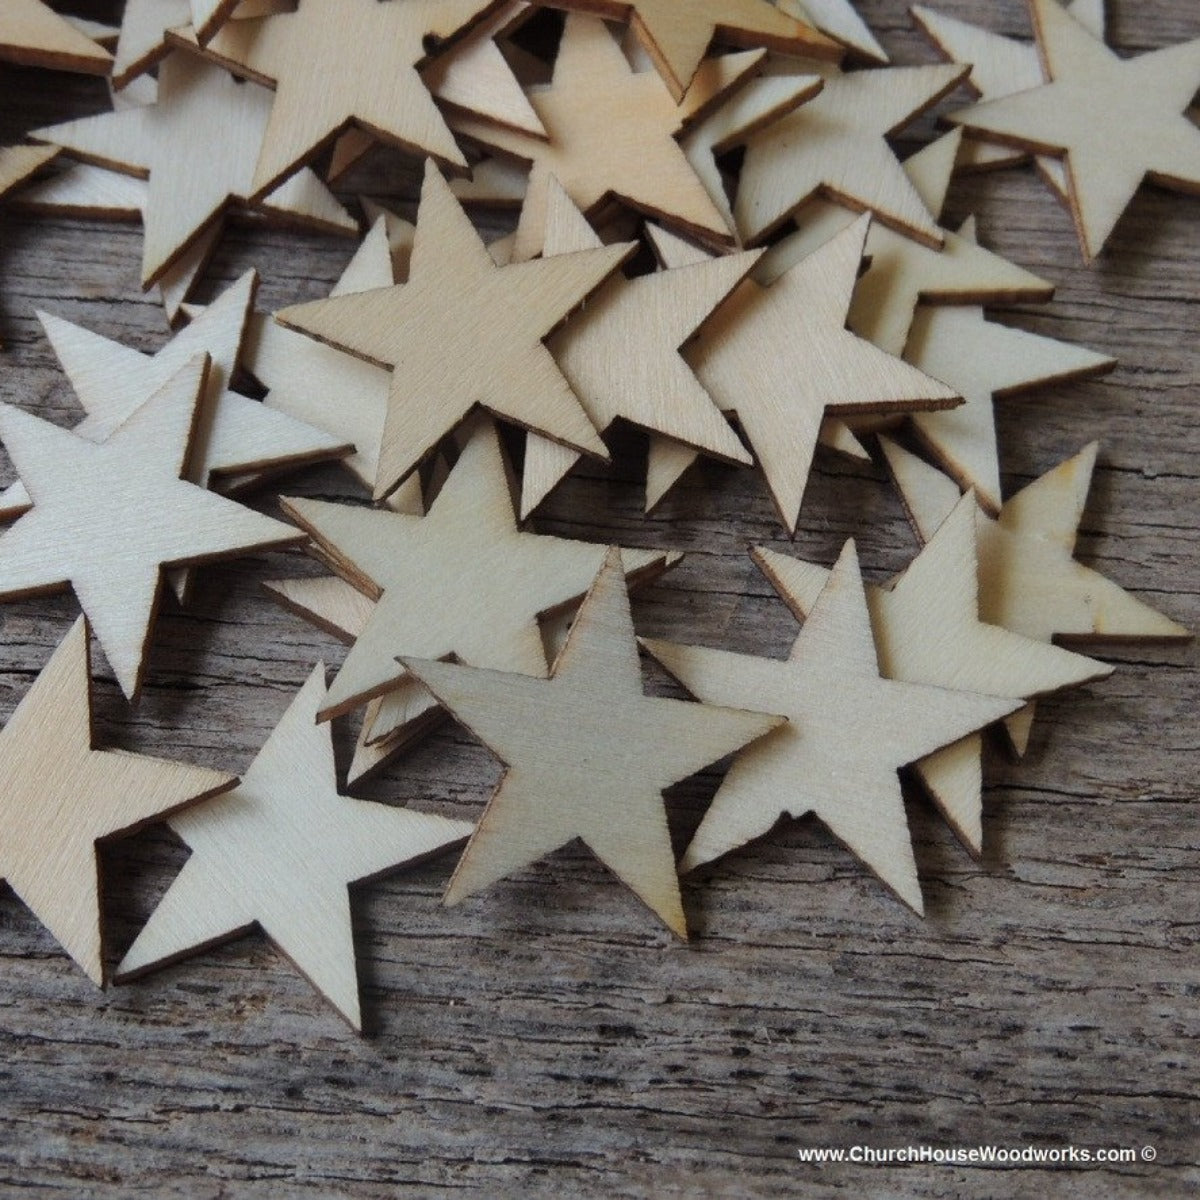 Rustic stars for crafts - 50 Little Wood Stars Very Small 1 Inch Size